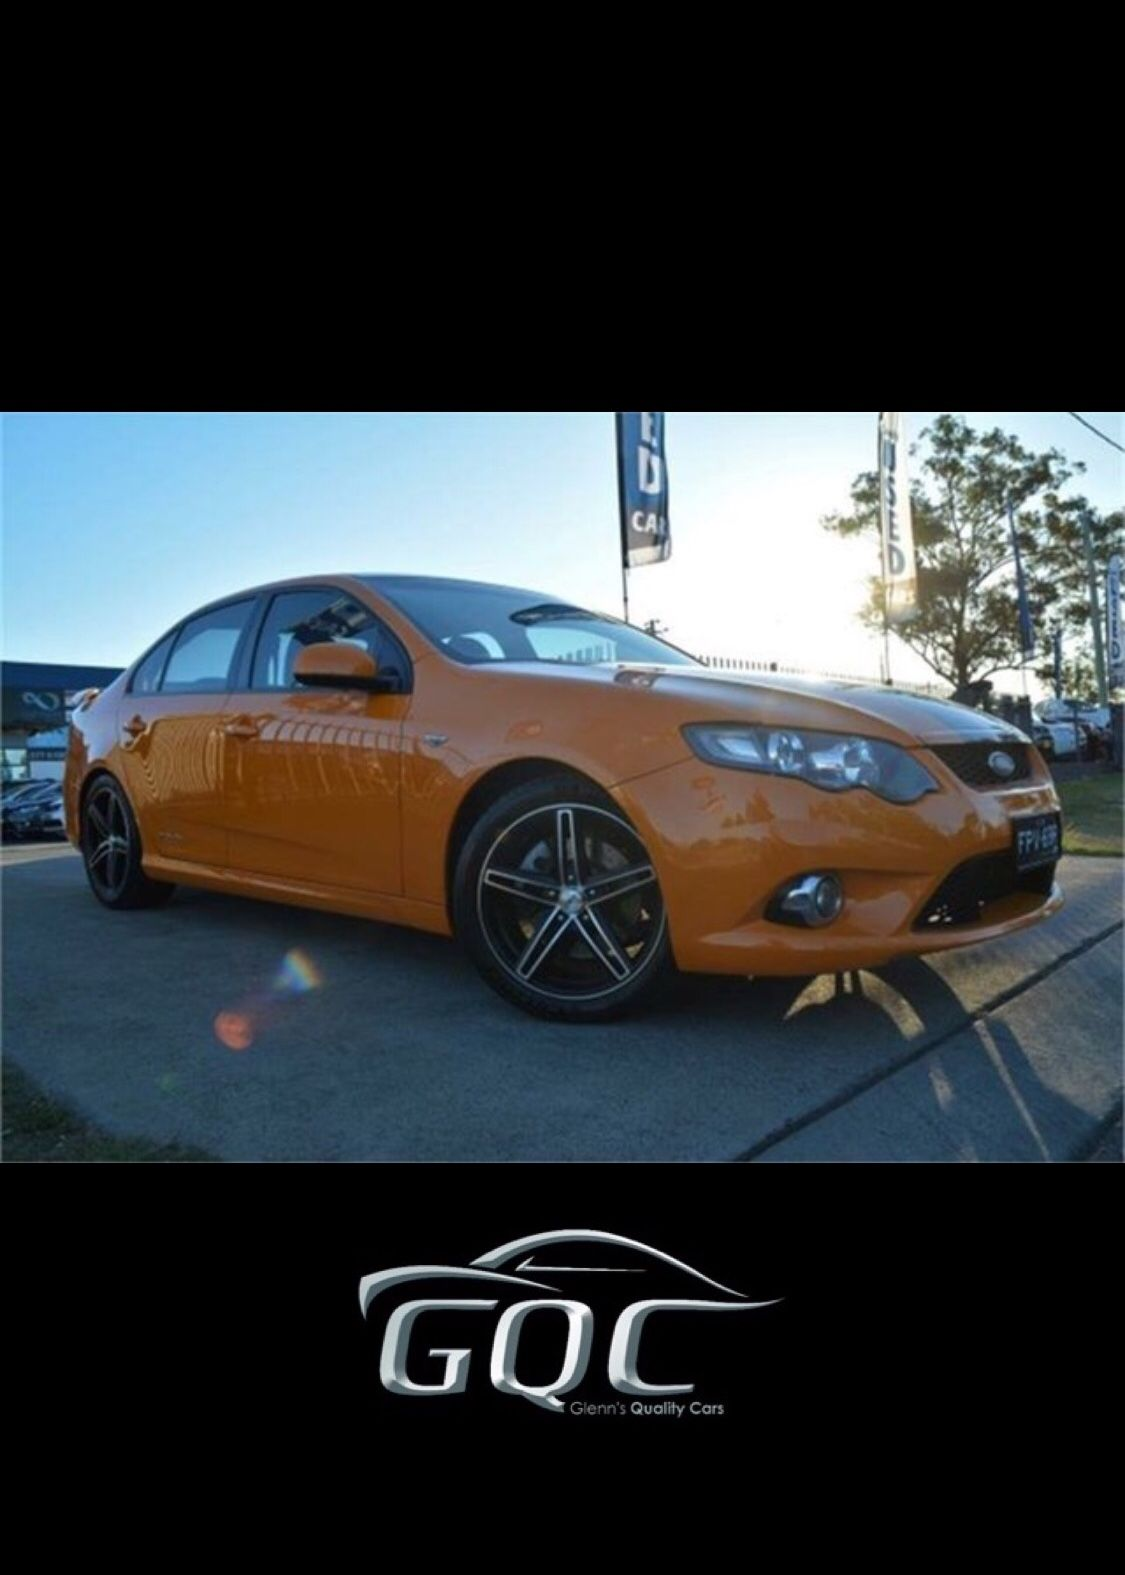 2008 Ford Falcon XR6 Turbo Sedan....16,999!! Cars for